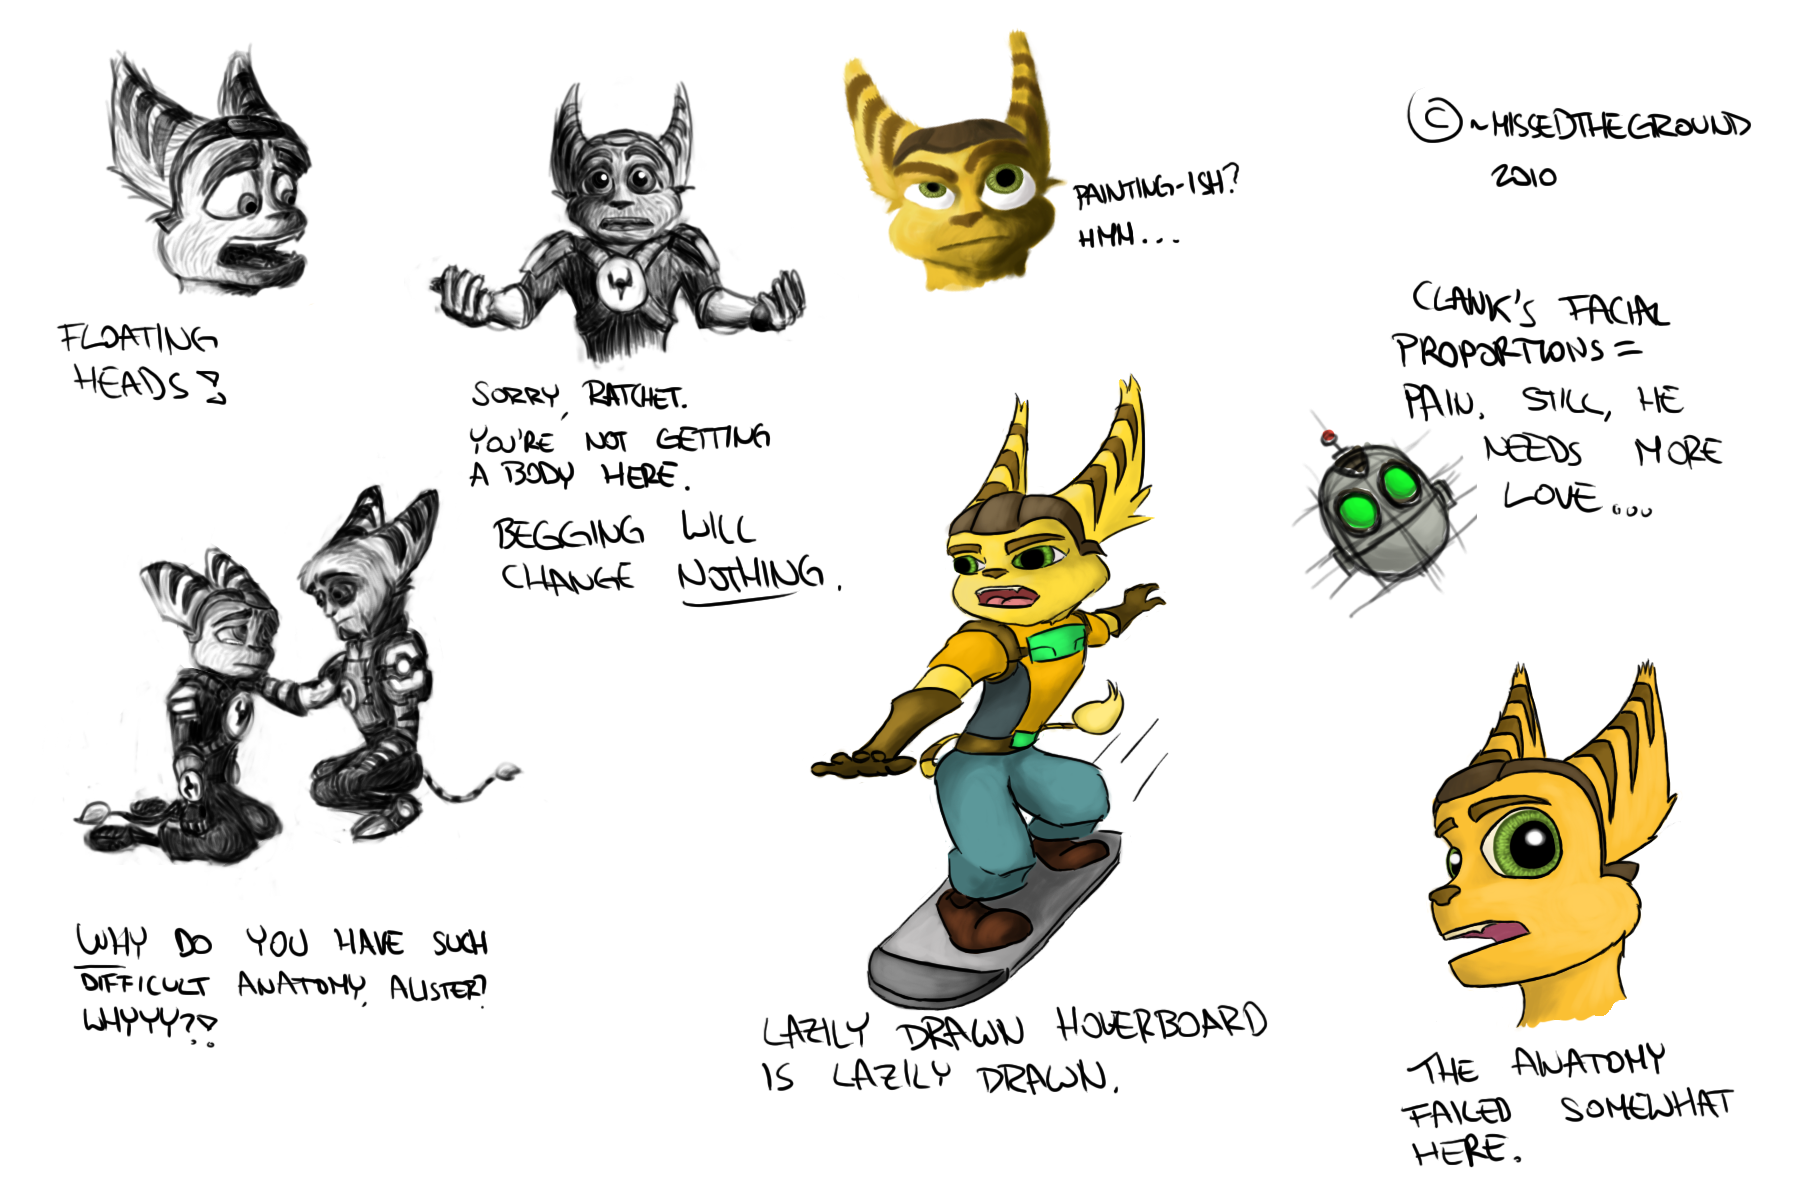 1800x1200 Ratchet And Clank Sketches By Missedtheground